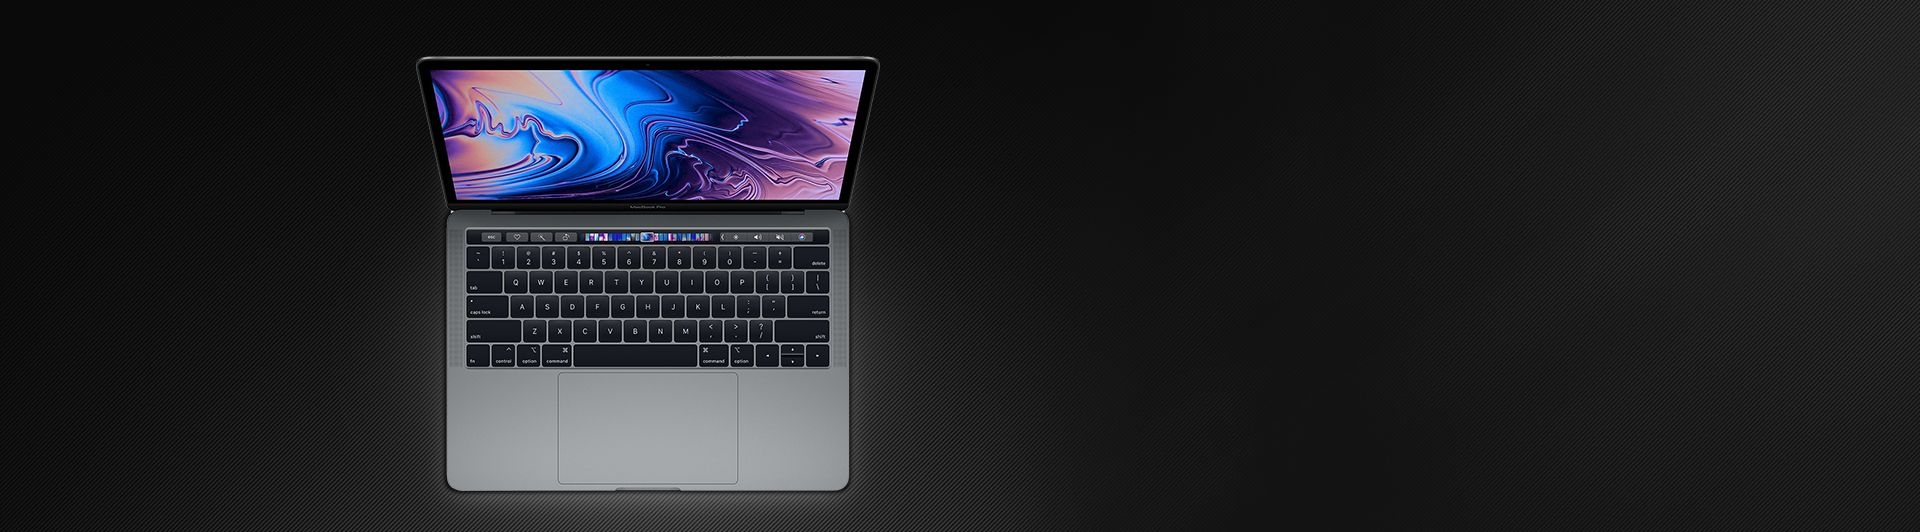 Macbook Pro i5 13.3 inch 2019 256GB Touch Bar Grey (MV962SA/A)